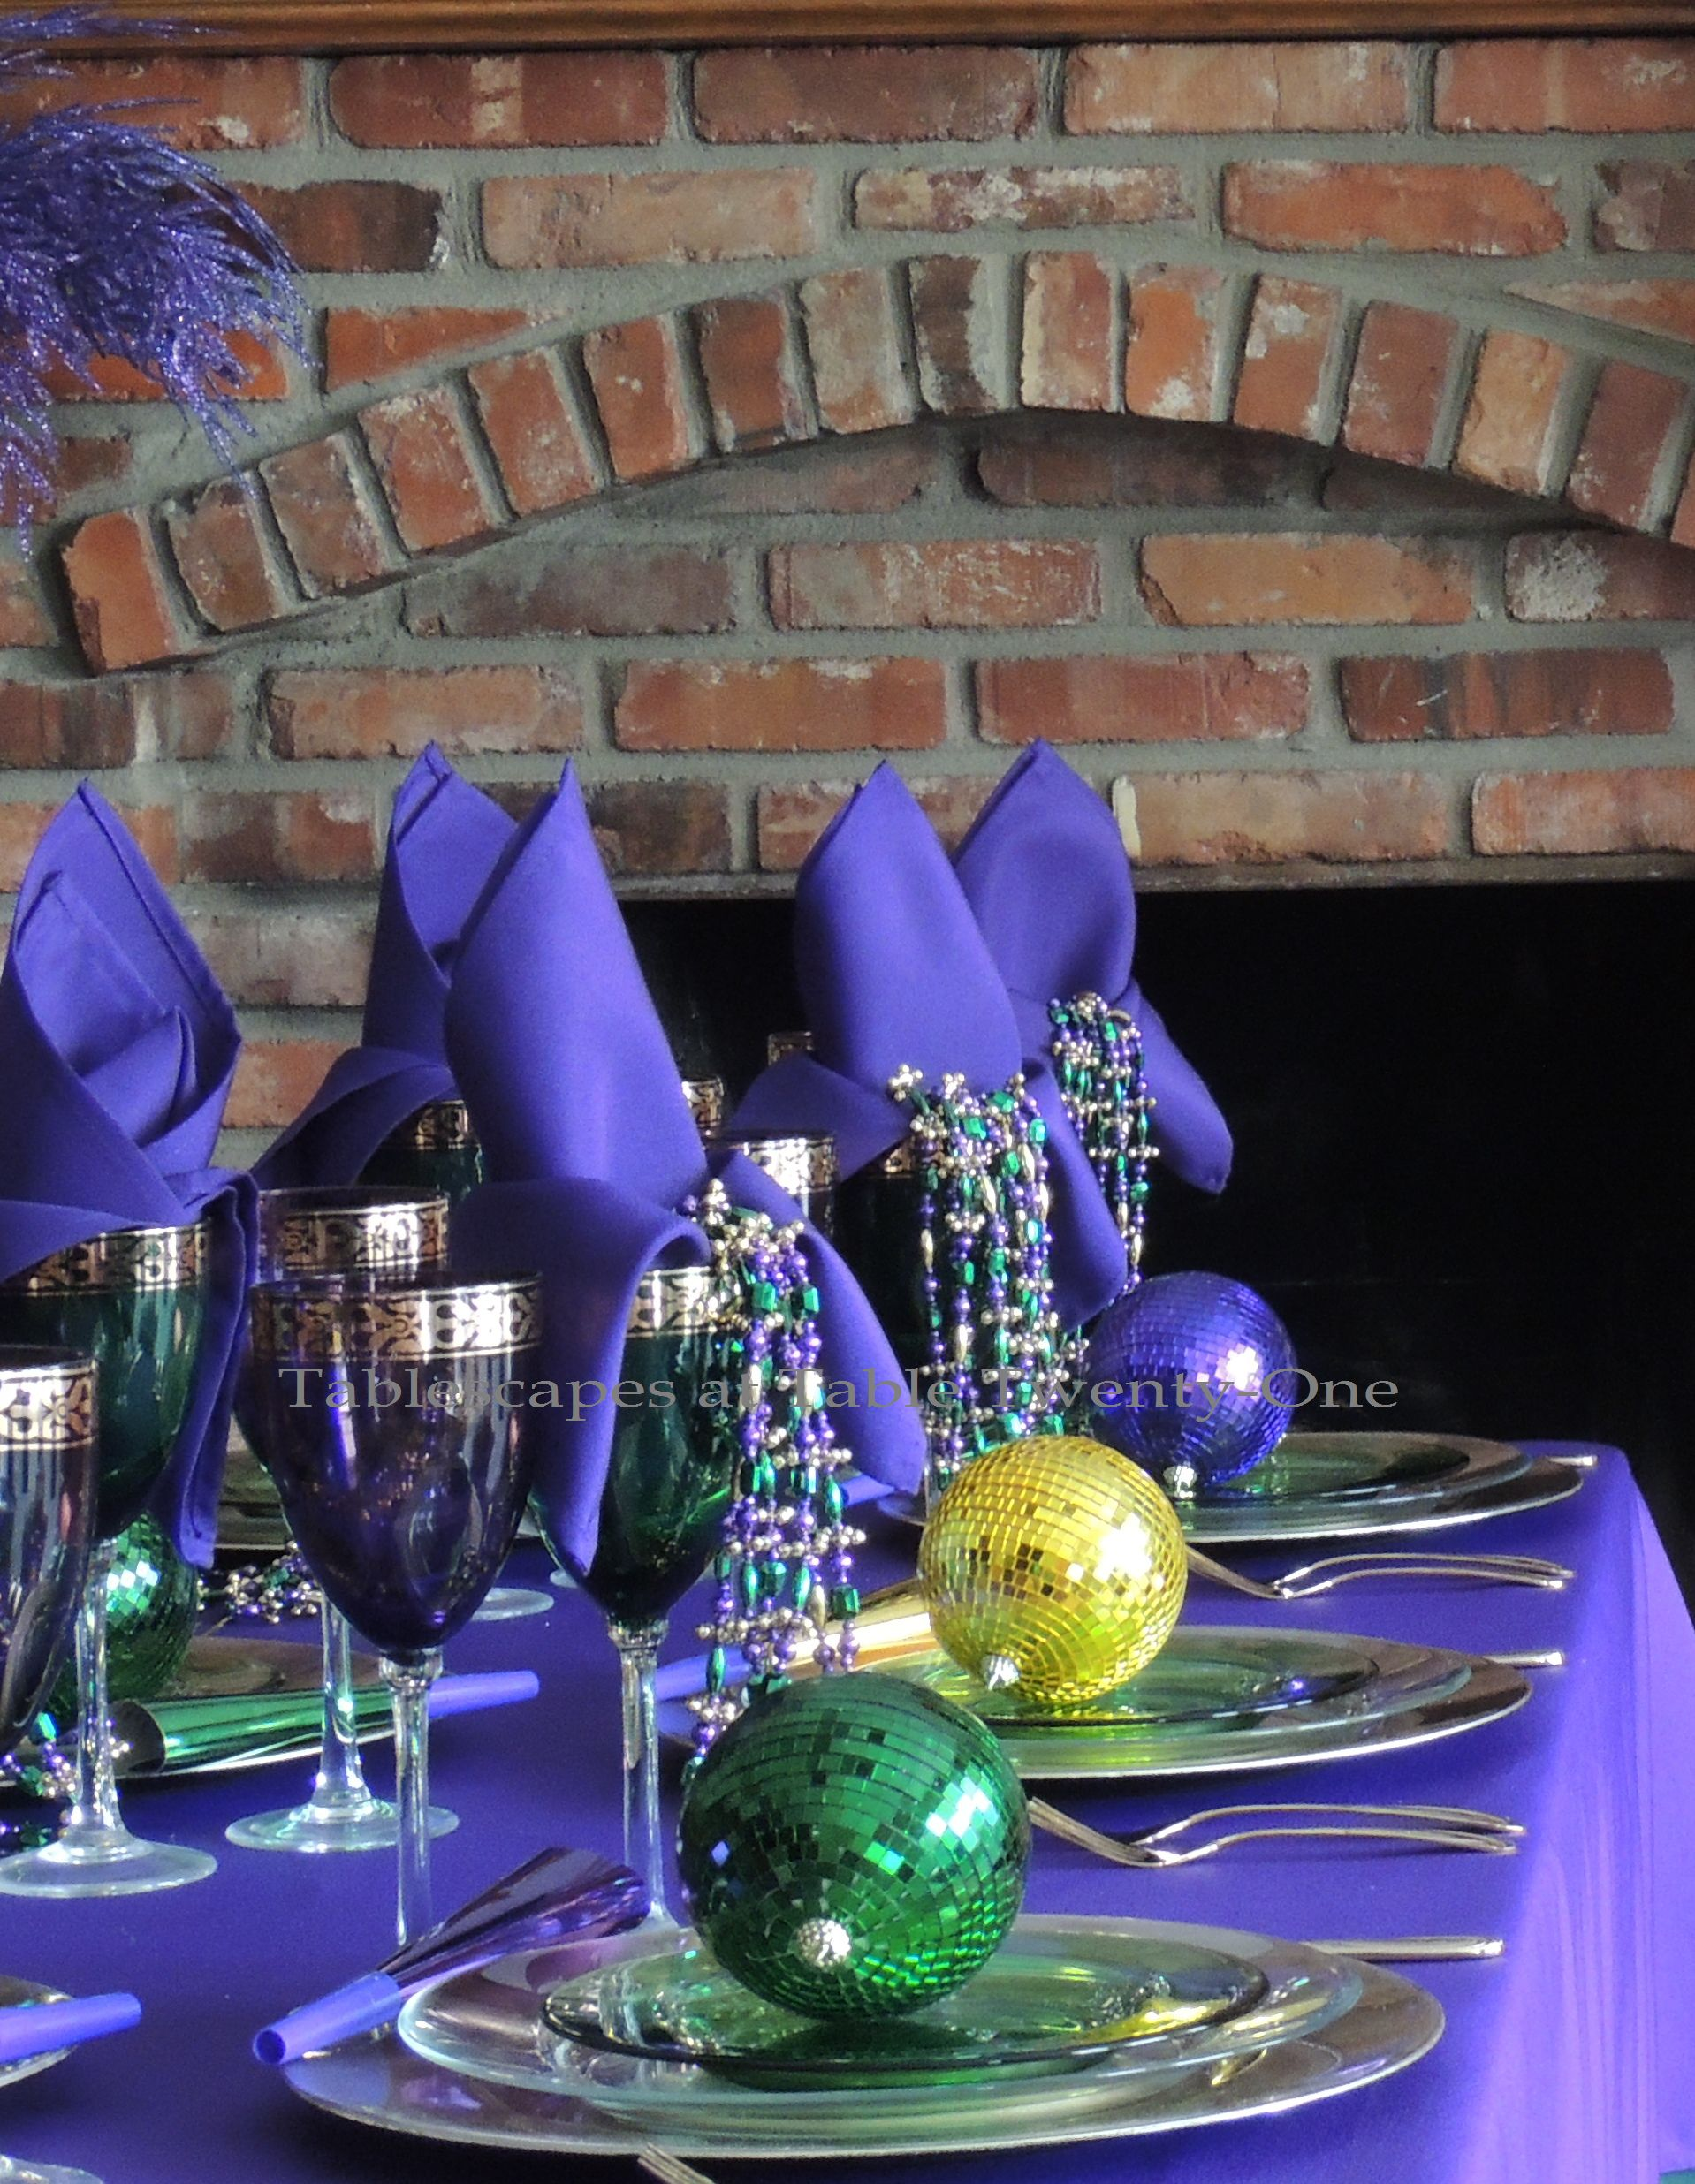 Here\u0027s the cool thing though\u2026the absence of a centerpiece is not readily noticeable because of the way the table is set! The \u201ccenterpieces\u201d are happily ... & Mardi Gras | Tablescapes at Table 21